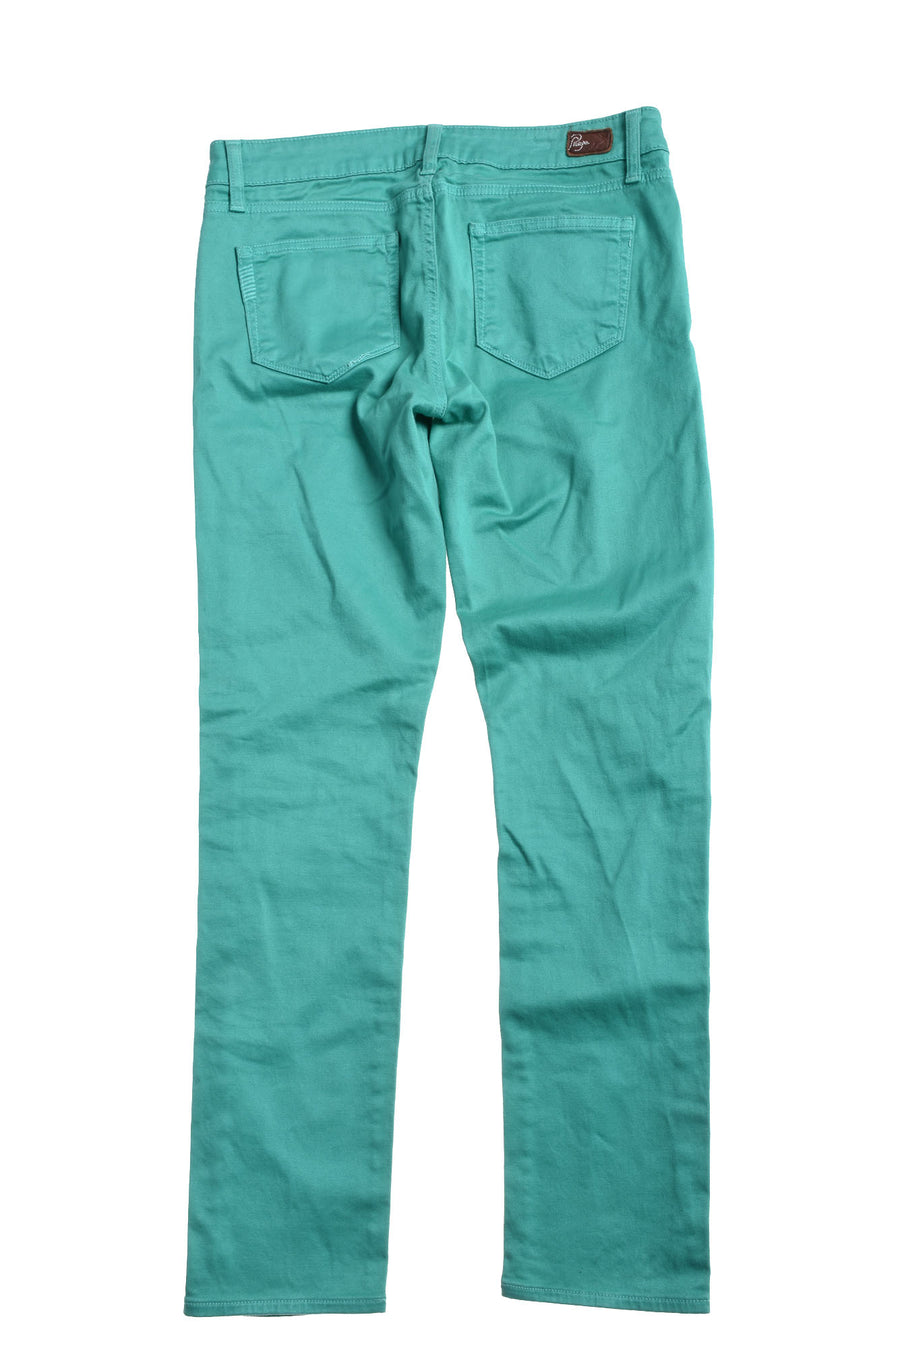 USED Paige Women's Pants Teal 28